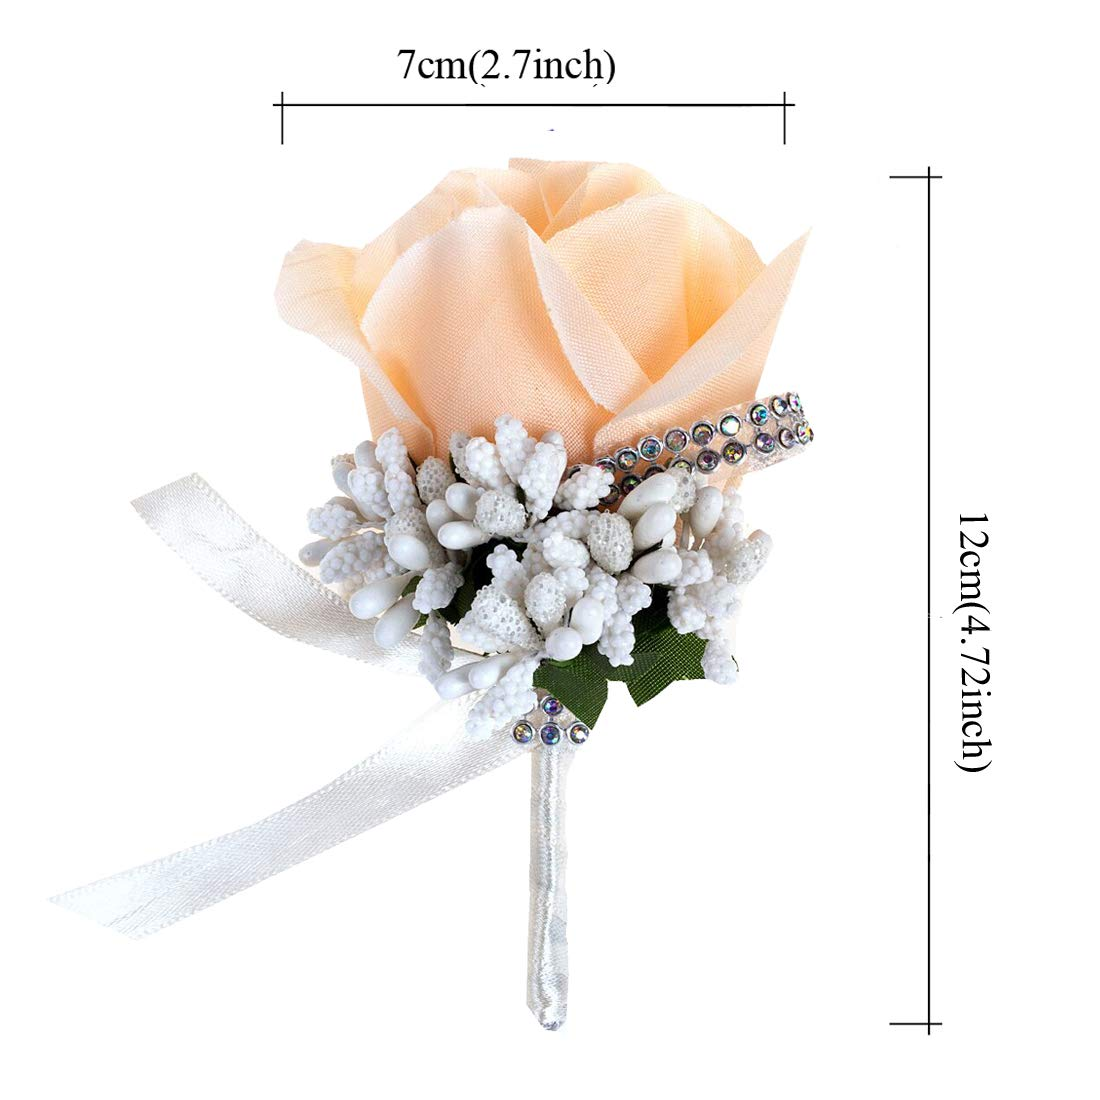 6pcs Party JaosWish Rose Boutonniere Handmade Corsage with Pin and Clip for Bridegroom Grooms Man Perfect for Wedding Prom